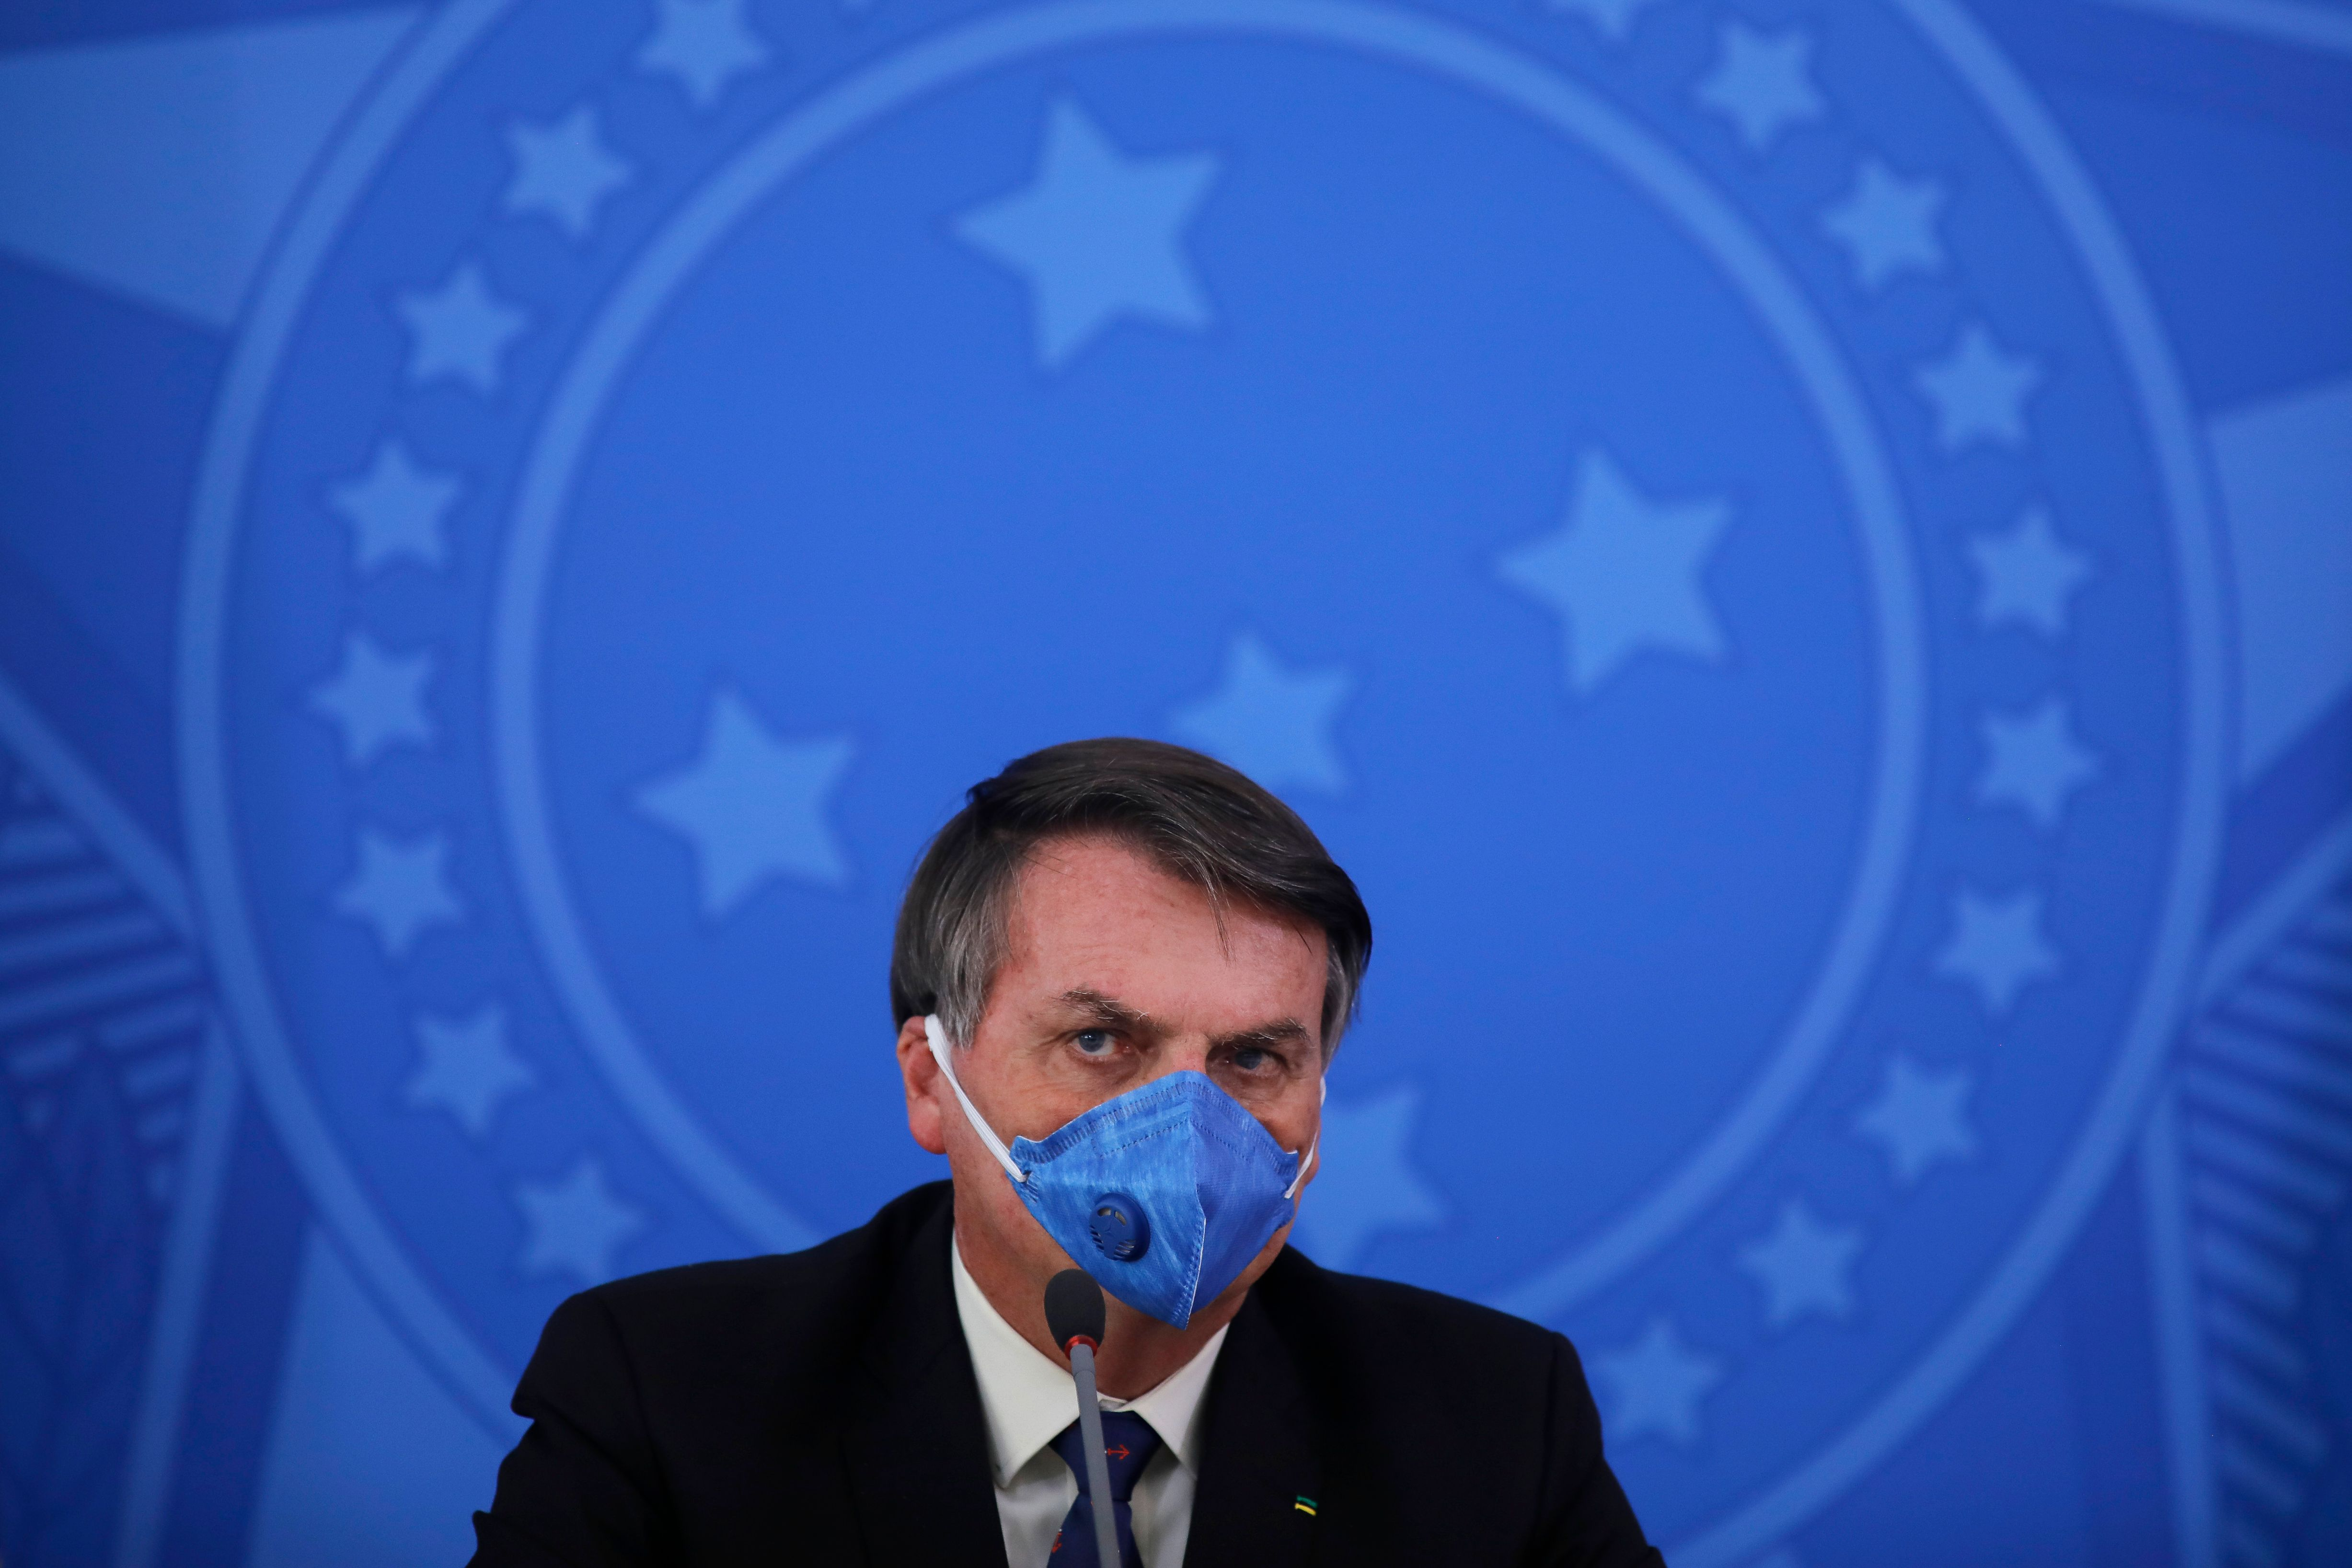 Brazil's President Jair Bolsonaro wears a face mask during a press conference on the coronavirus pandemic at the Planalto Palace in Brasilia, Brazil on March 20, 2020.